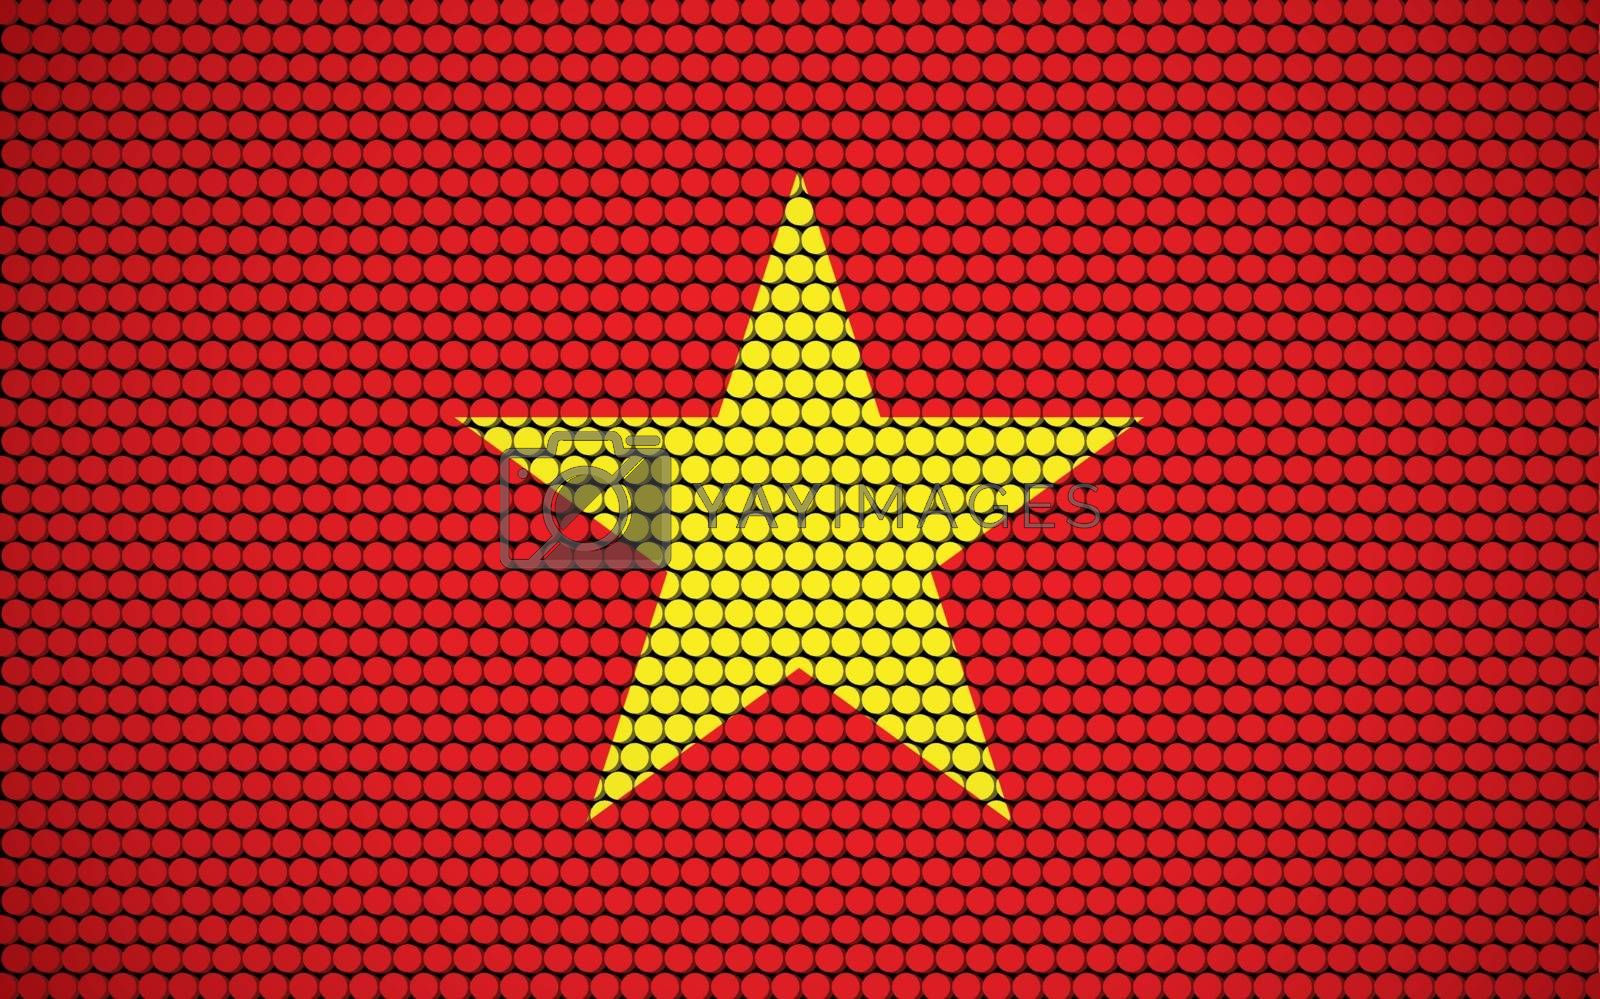 Abstract flag of Vietnam made of circles. Vietnamese flag designed with colored dots giving it a modern and futuristic abstract look.